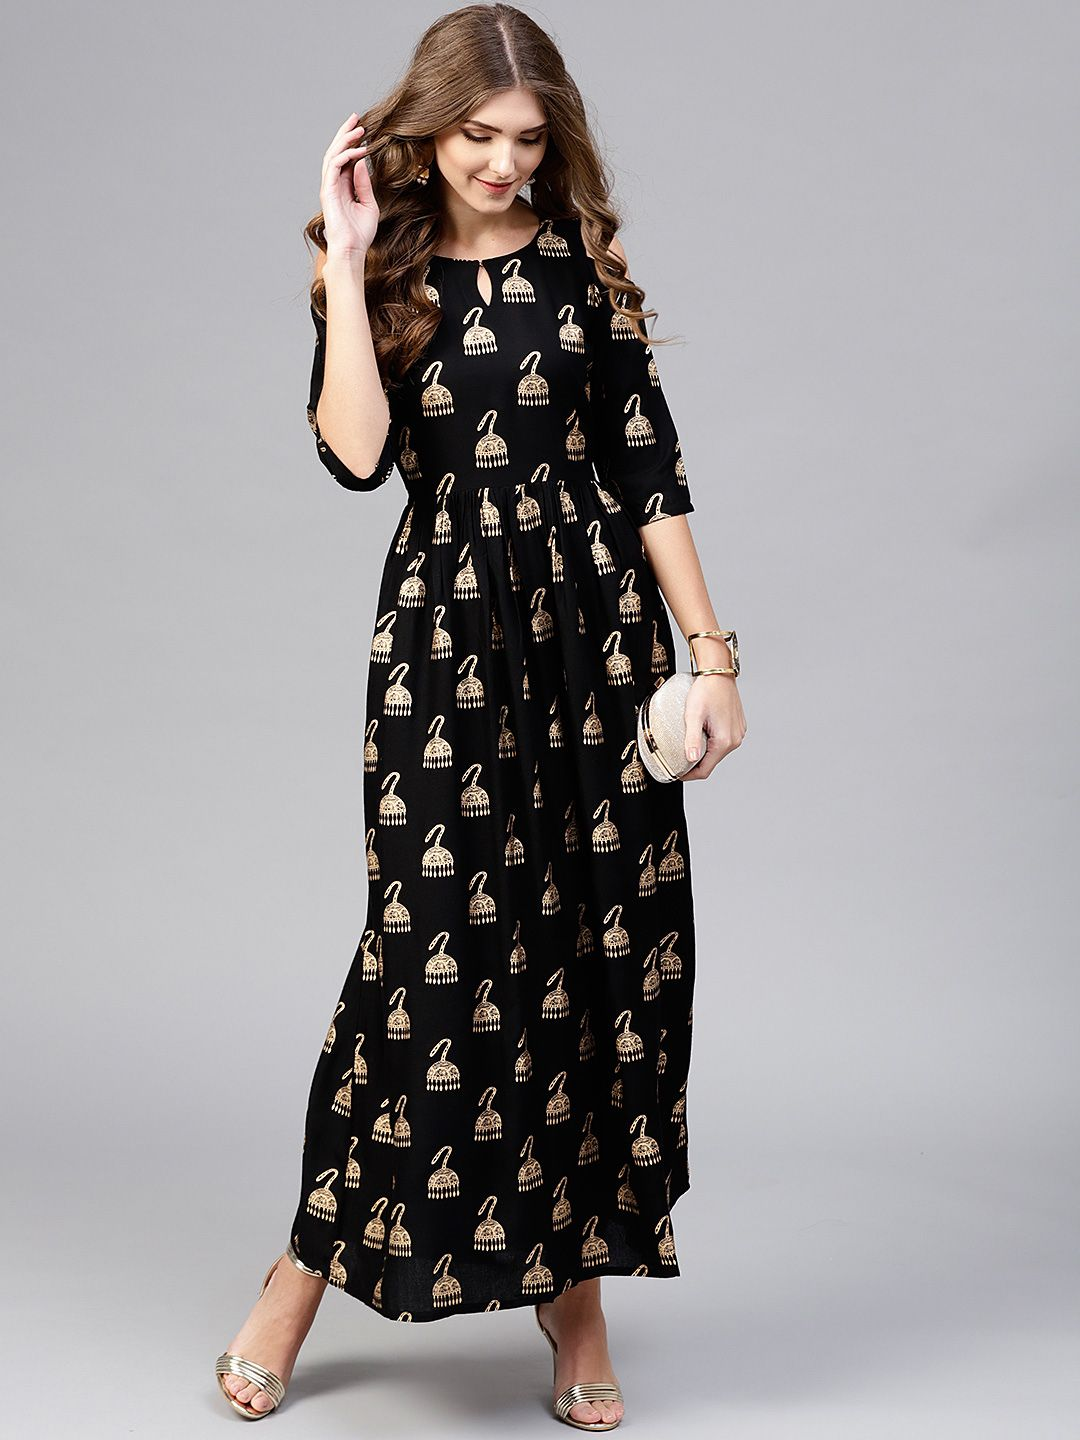 edfa9a7b8d Libas Women Black & Golden Block Print Maxi Dress - Dresses for Women  7719007 | Myntra #dress #dresses #dressesforwomen #maxidress  #maxidressessummer ...